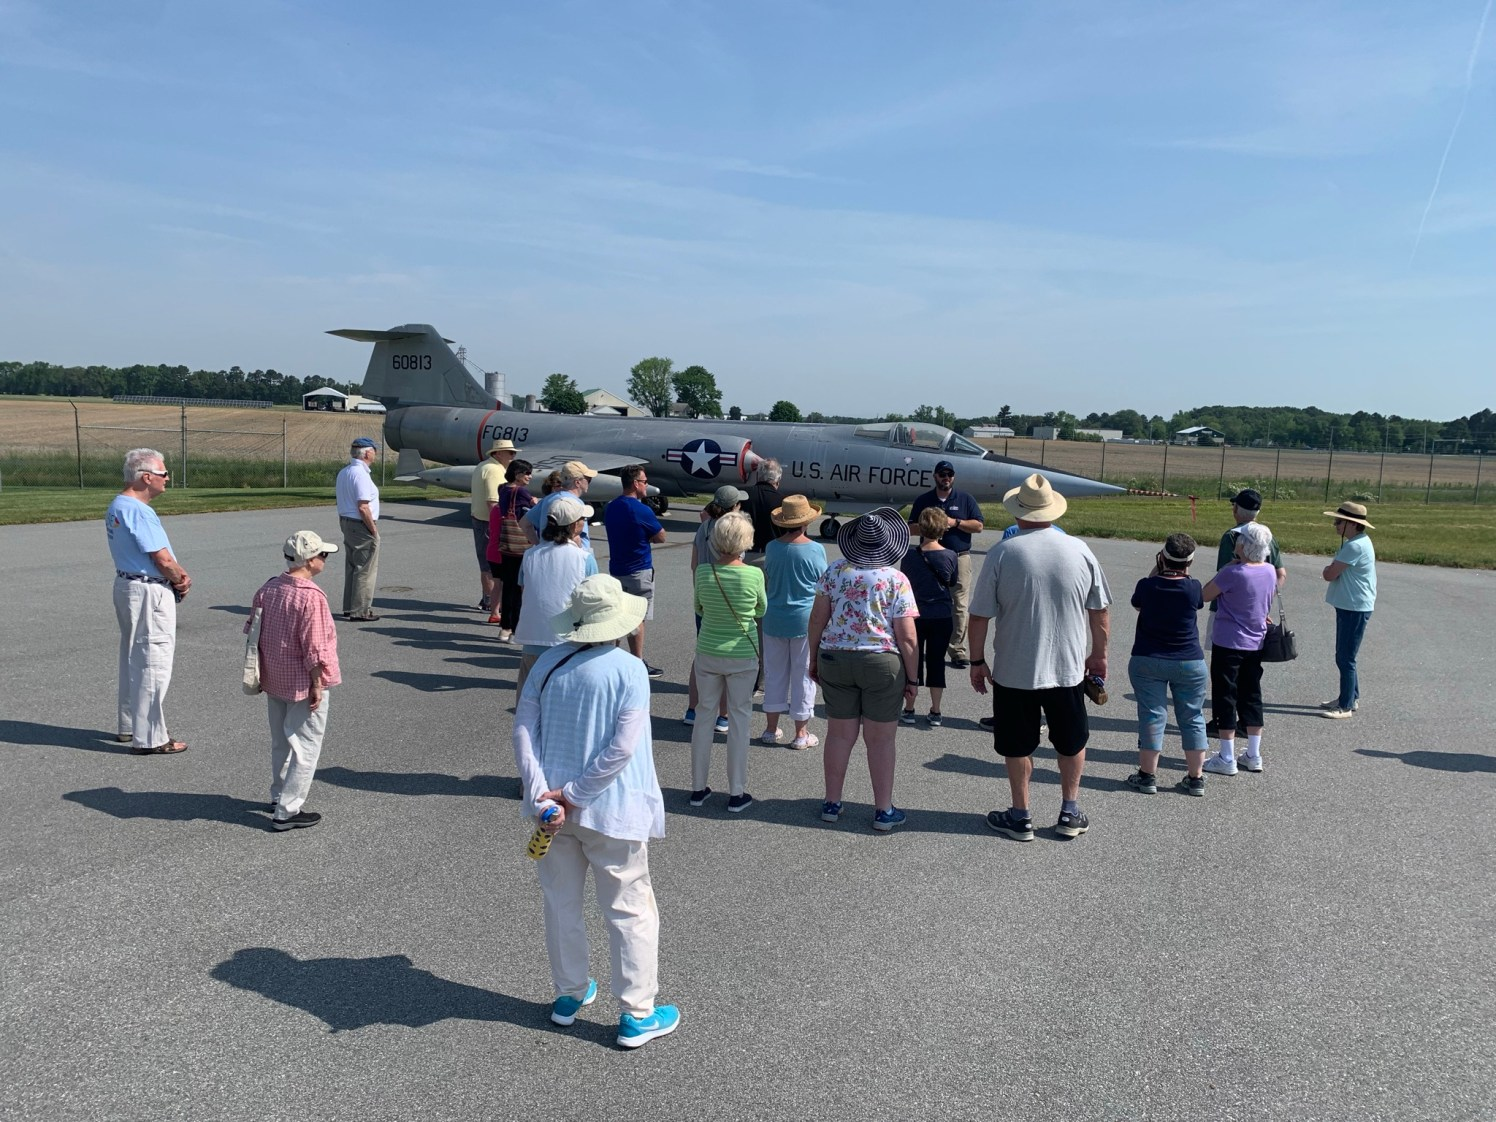 Easton Airport Manager Micah Risher talked about the F-104 Starfighter on display at the Easton Airport